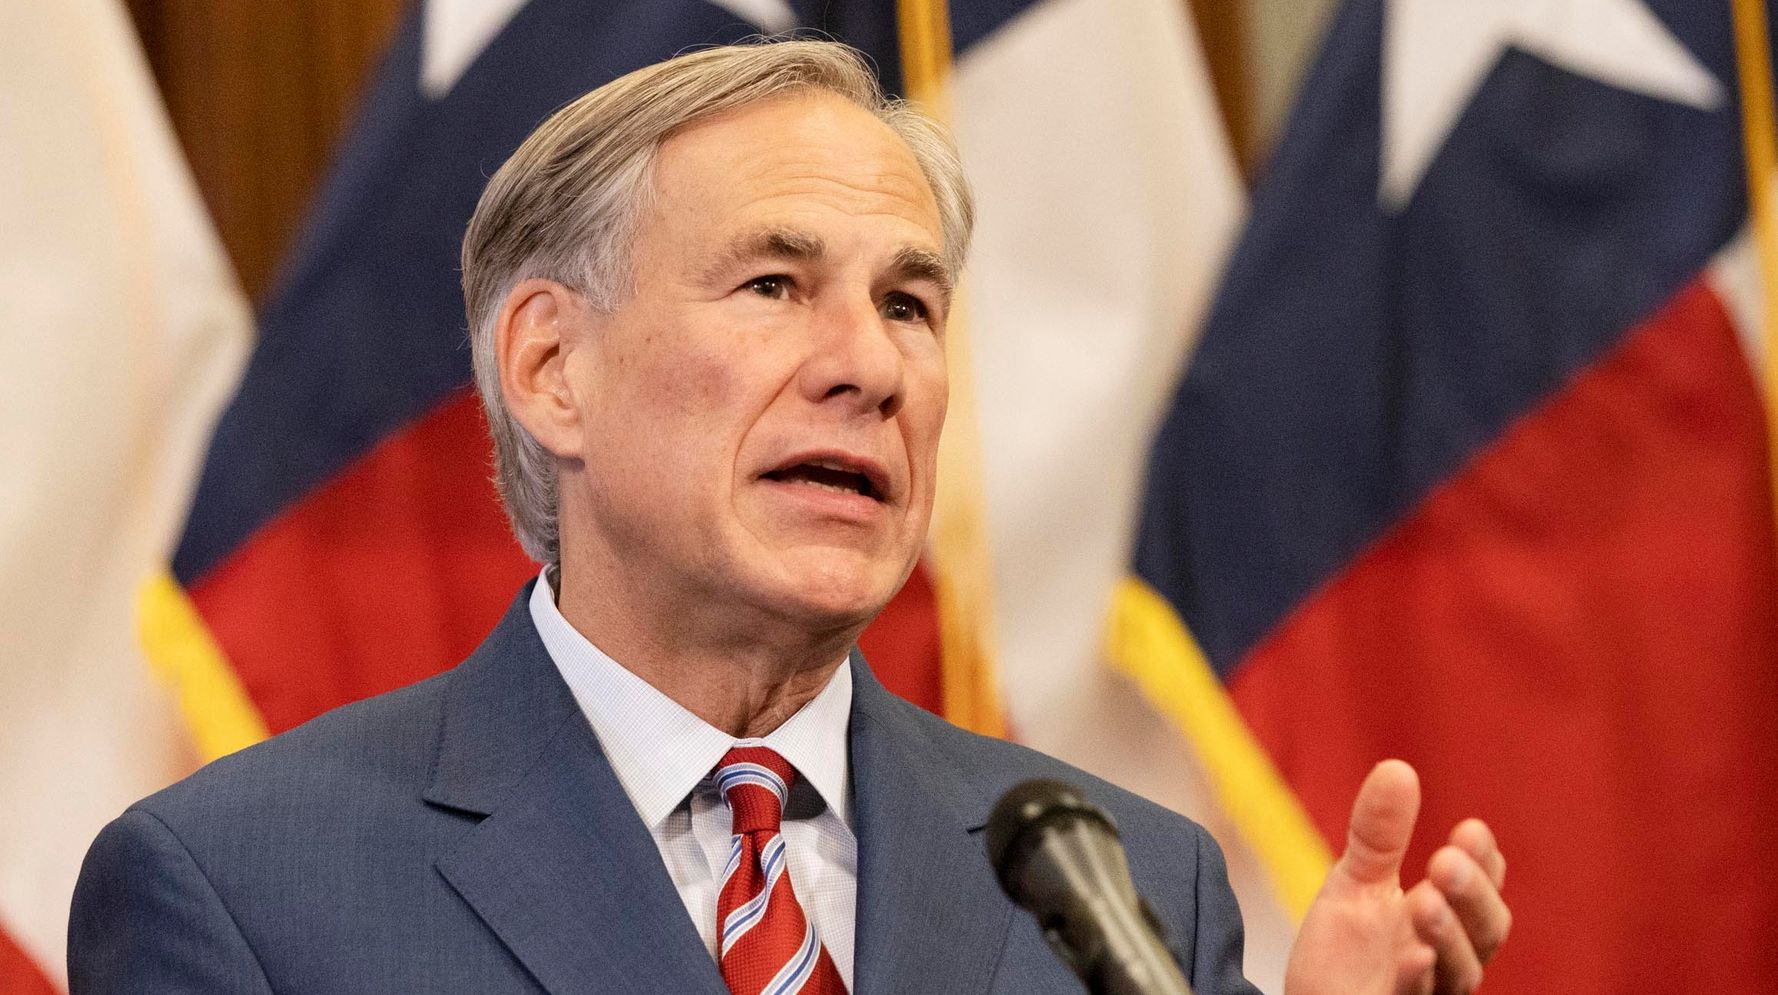 Texas Becomes Biggest State To Lift COVID-19 Mask Mandate